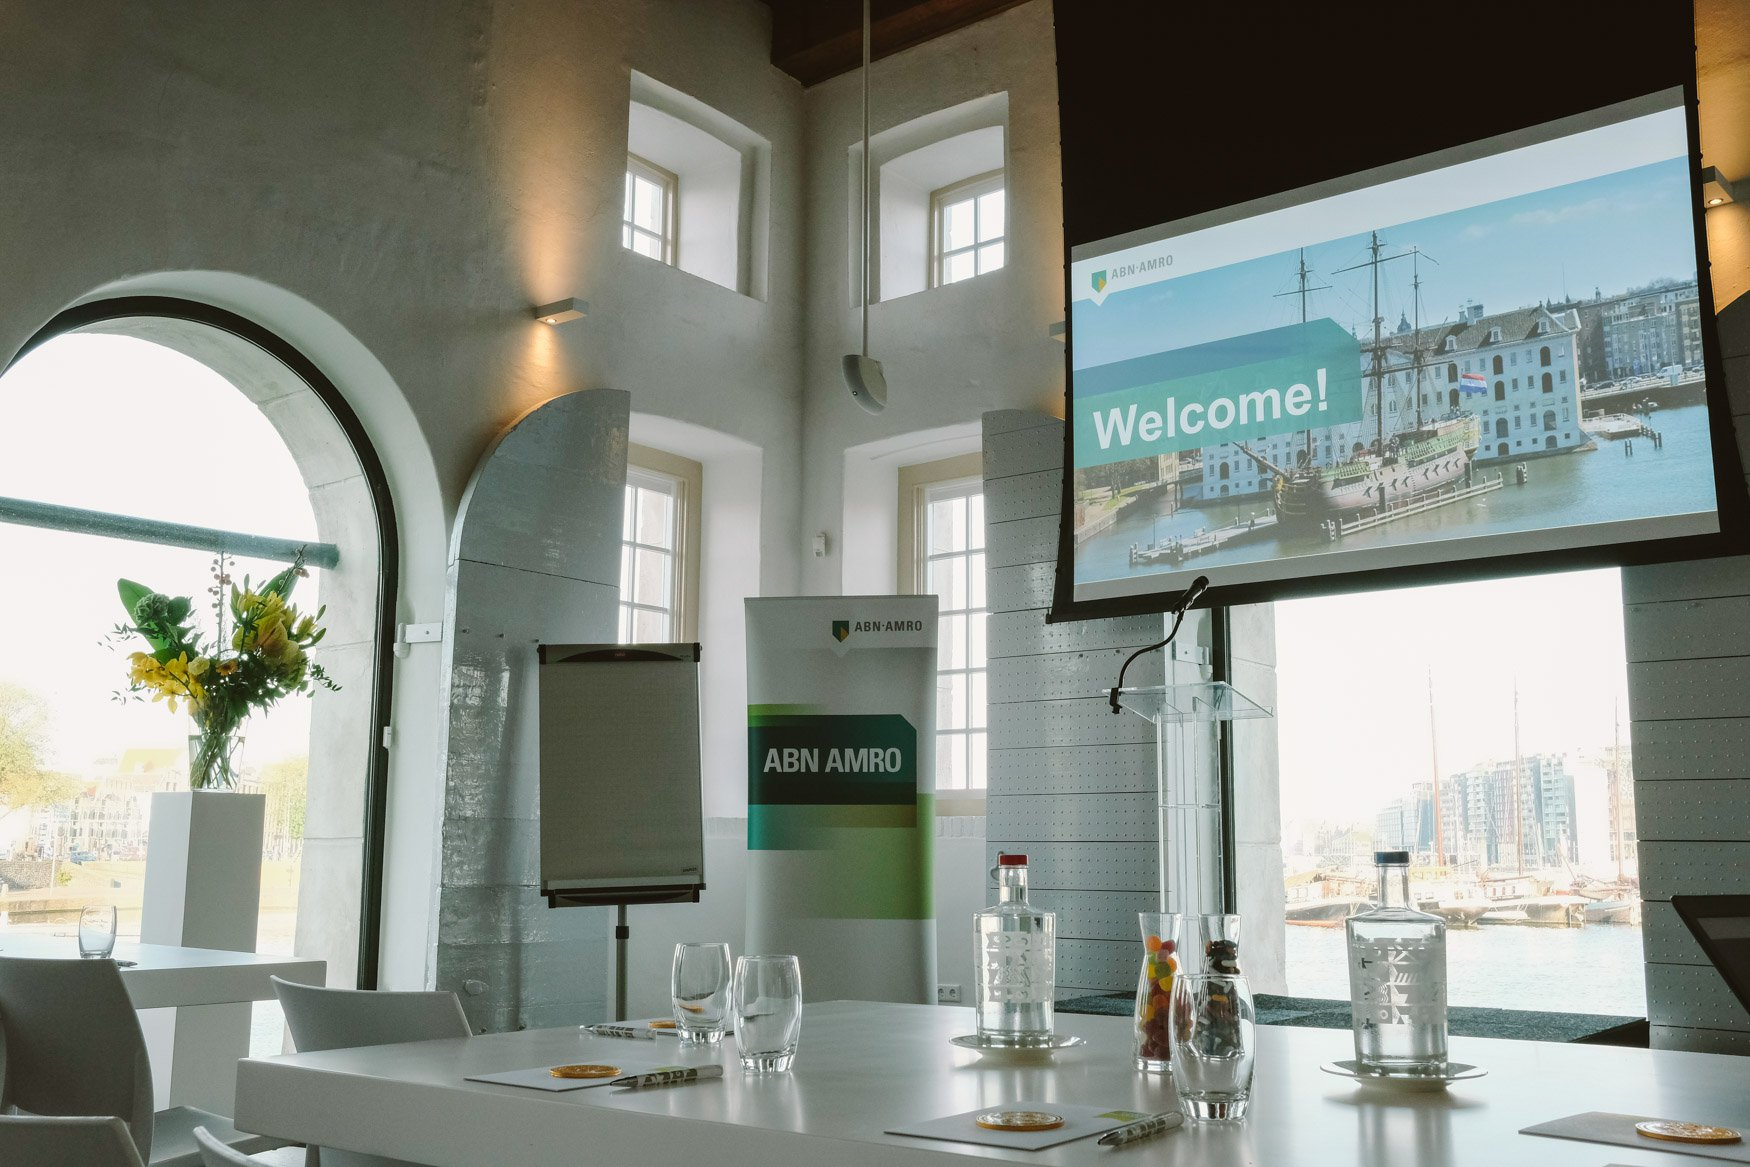 abn amro - I&T International Conference